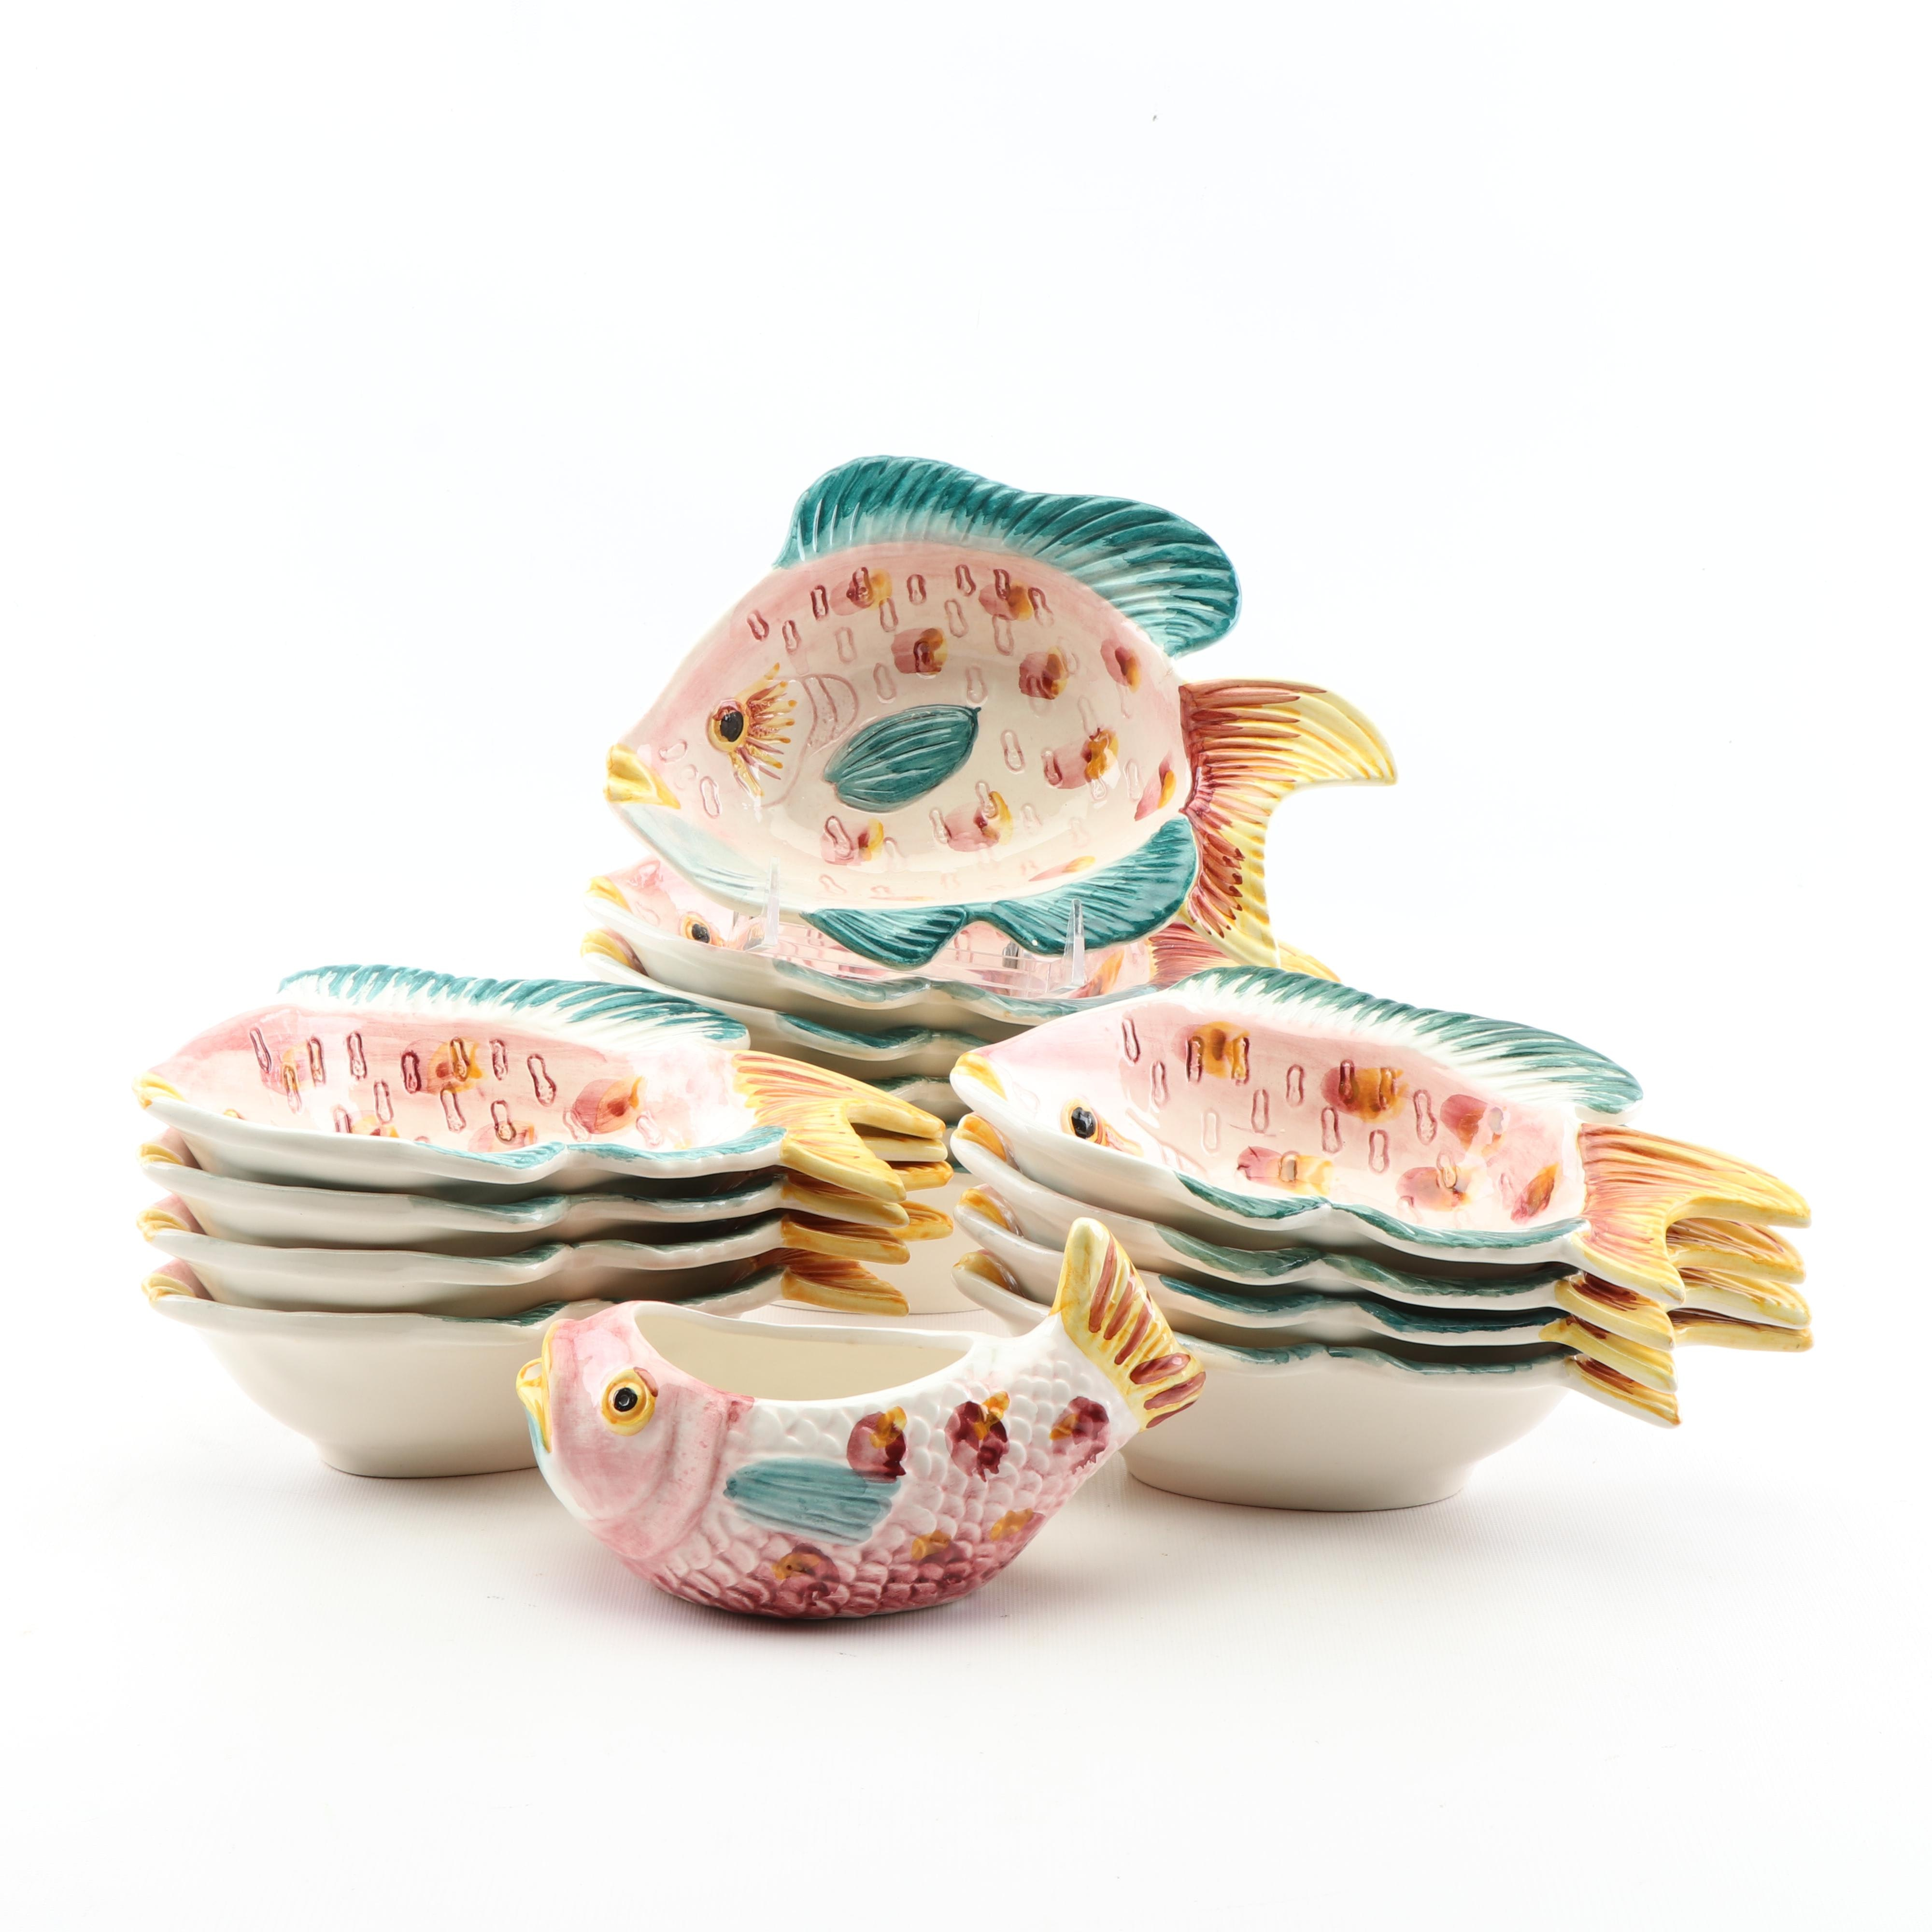 Hand-Painted Portuguese Ceramic Fish Bowls and Pitcher